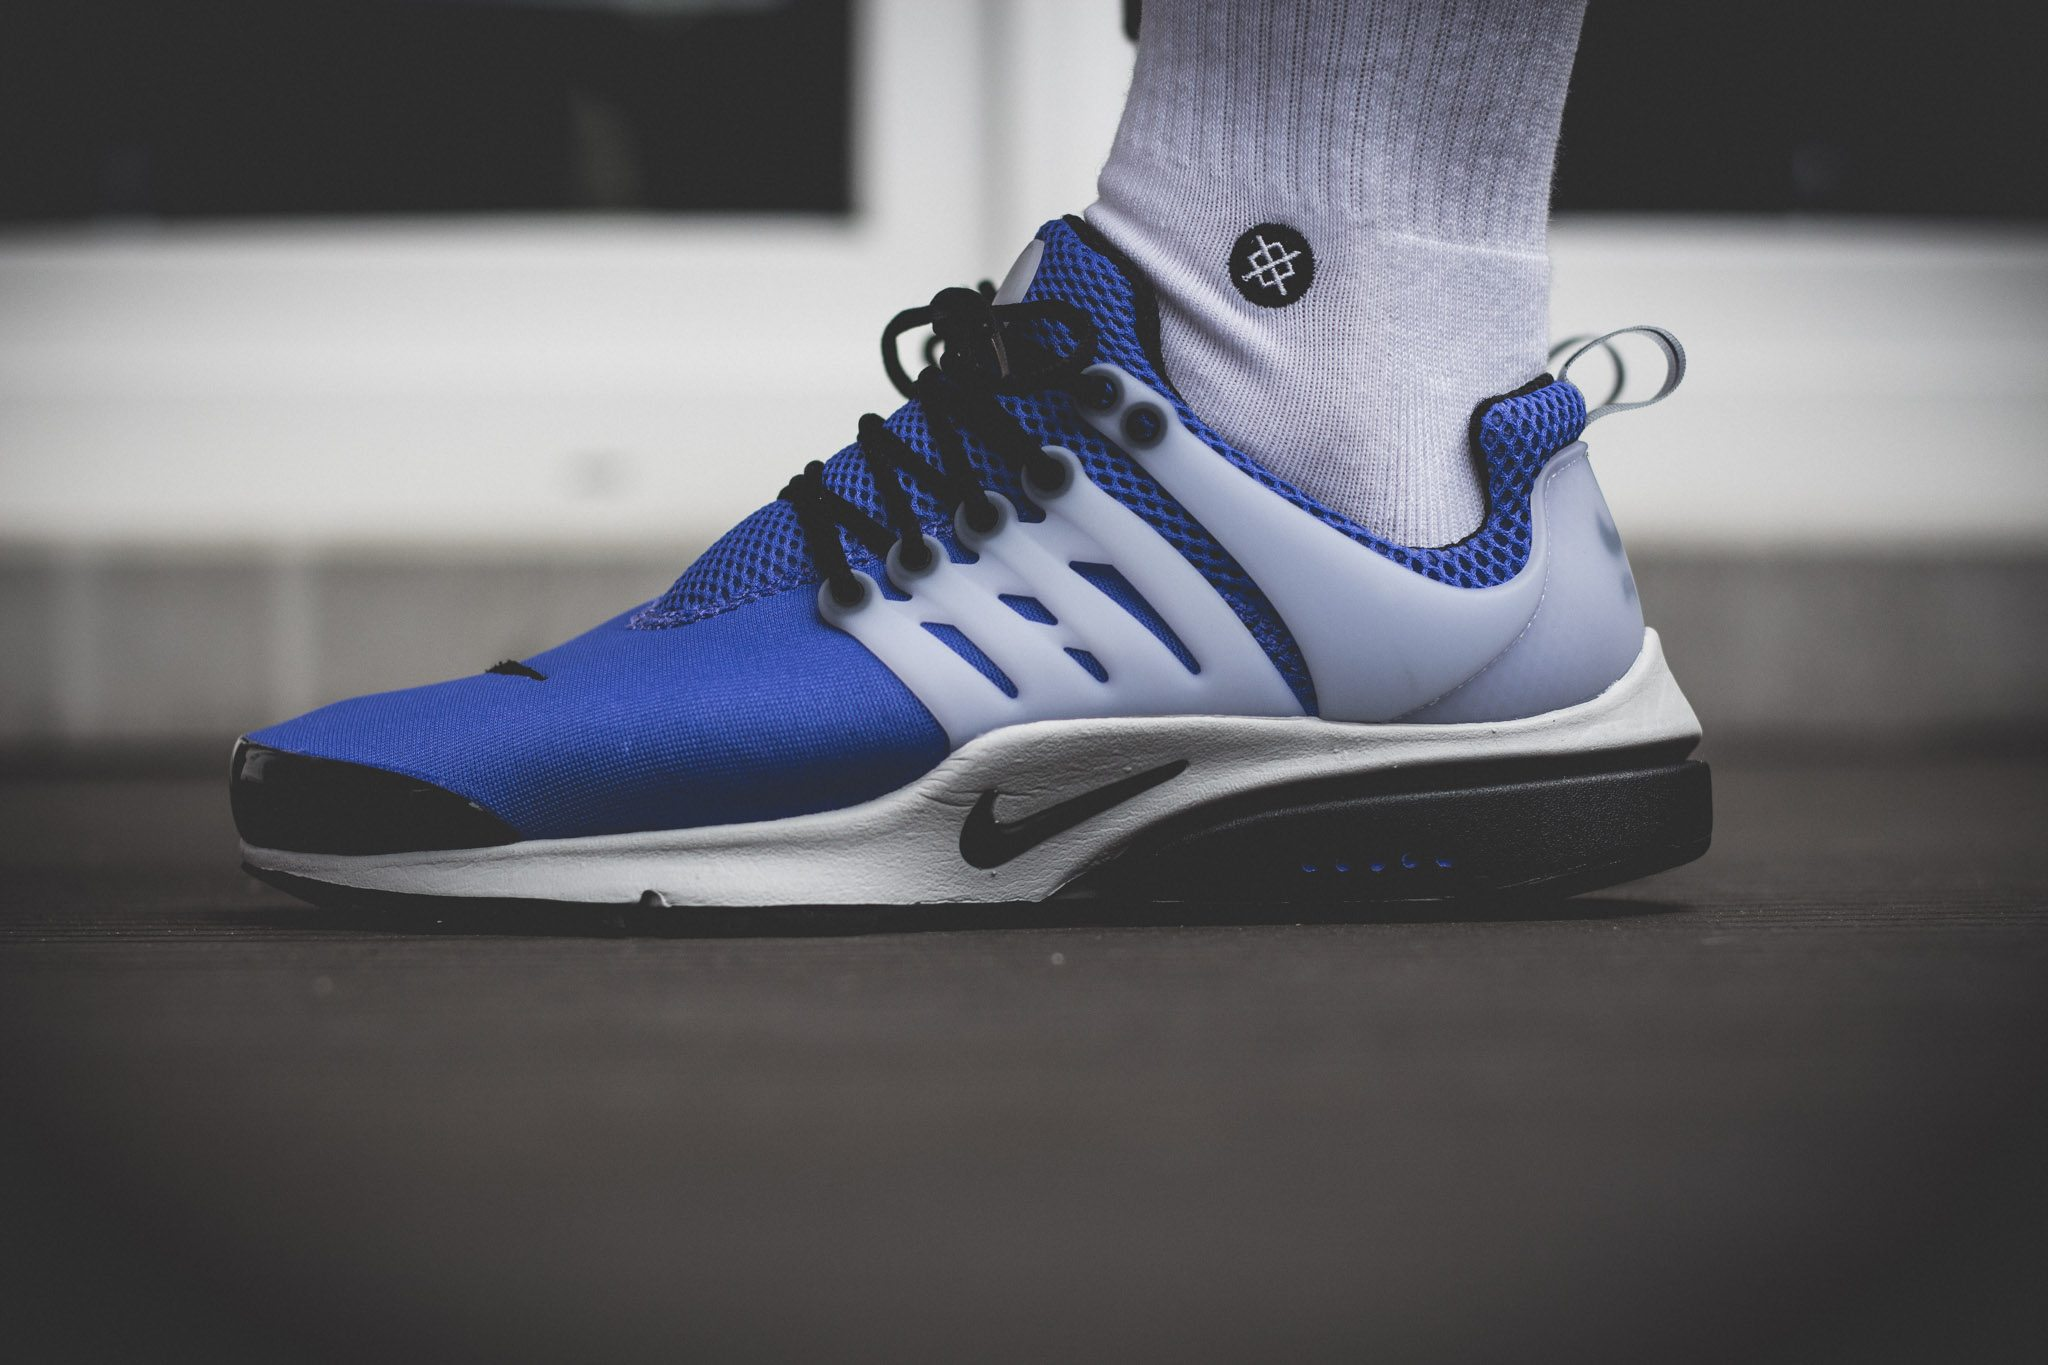 Nike Air Presto Persion Violet On Feet 5